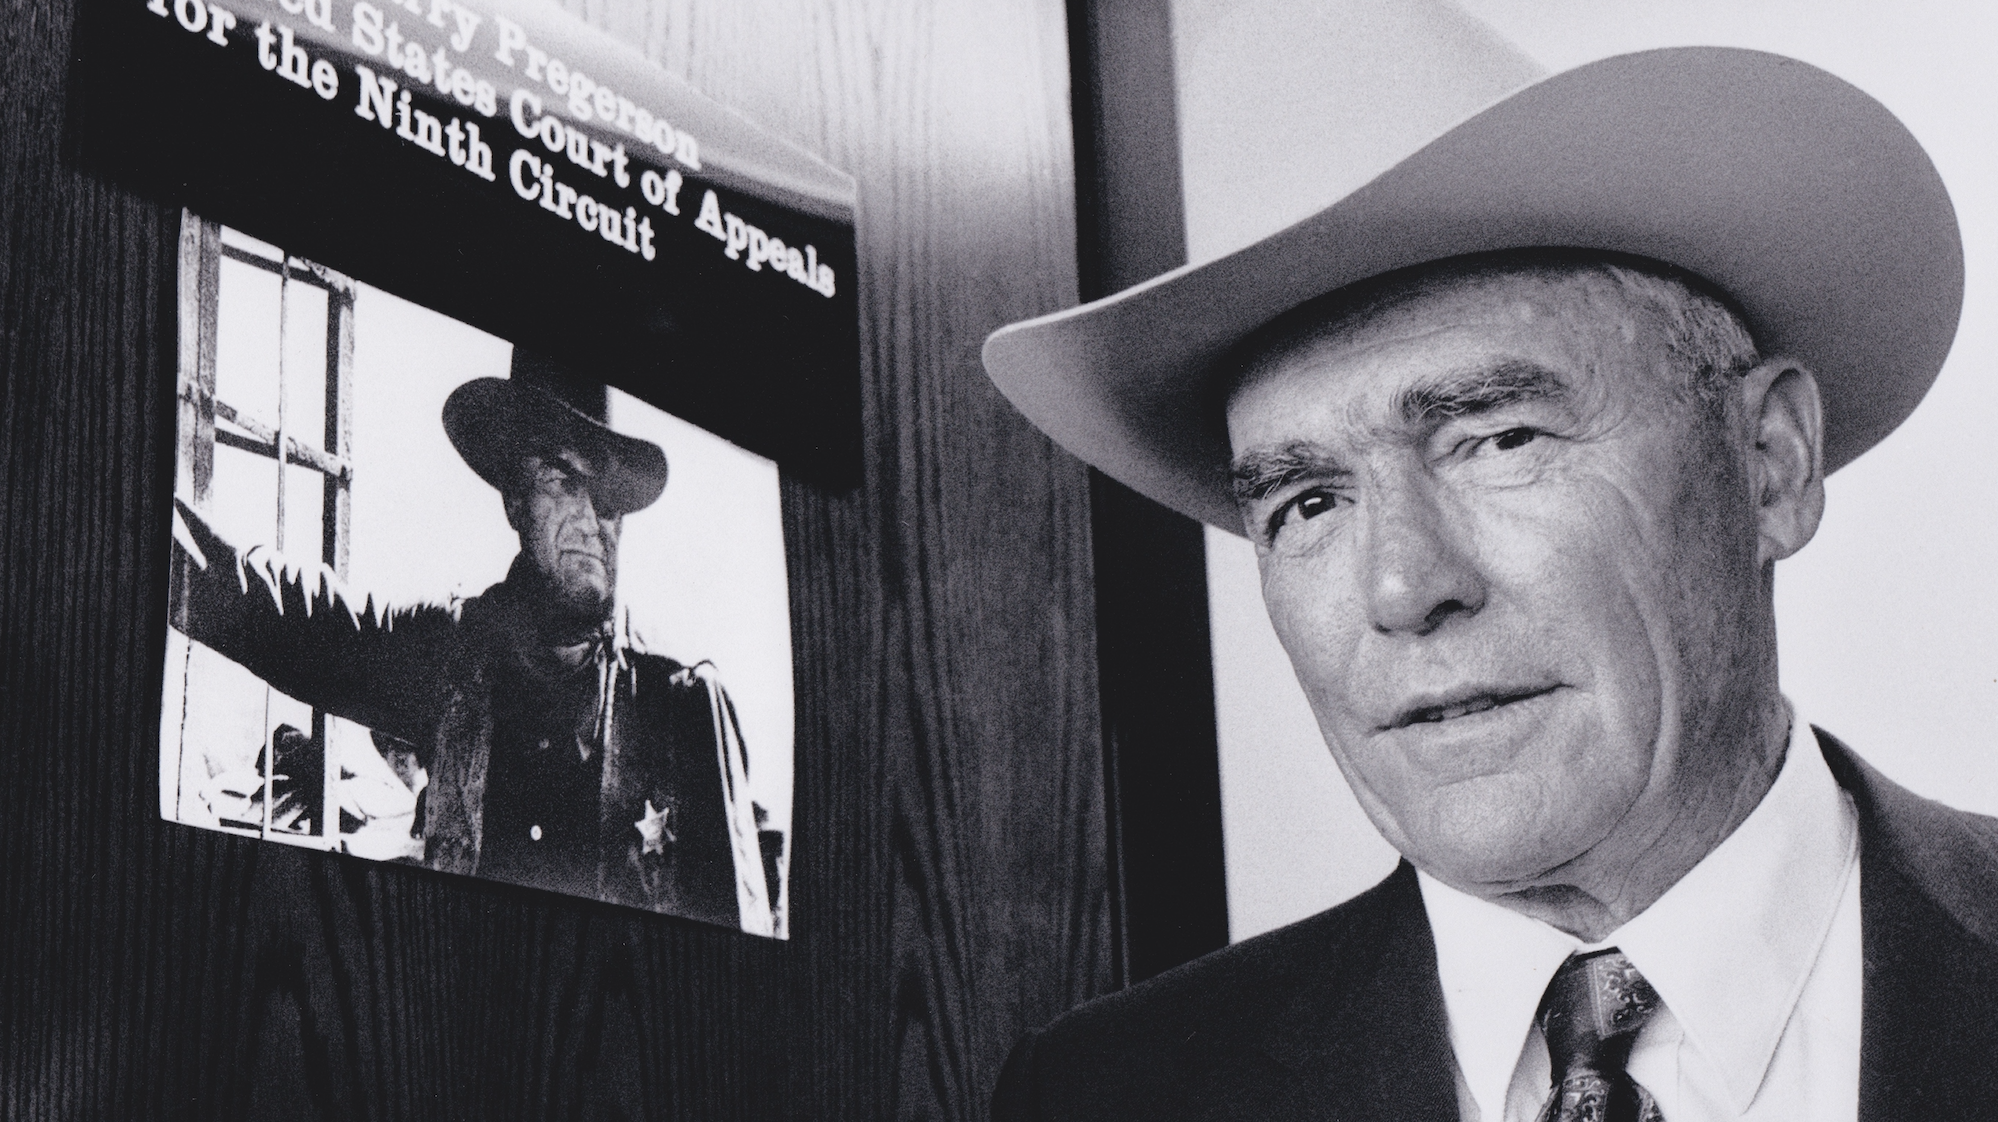 9th CIRCUIT COWBOY: The Story of a True Public Servant